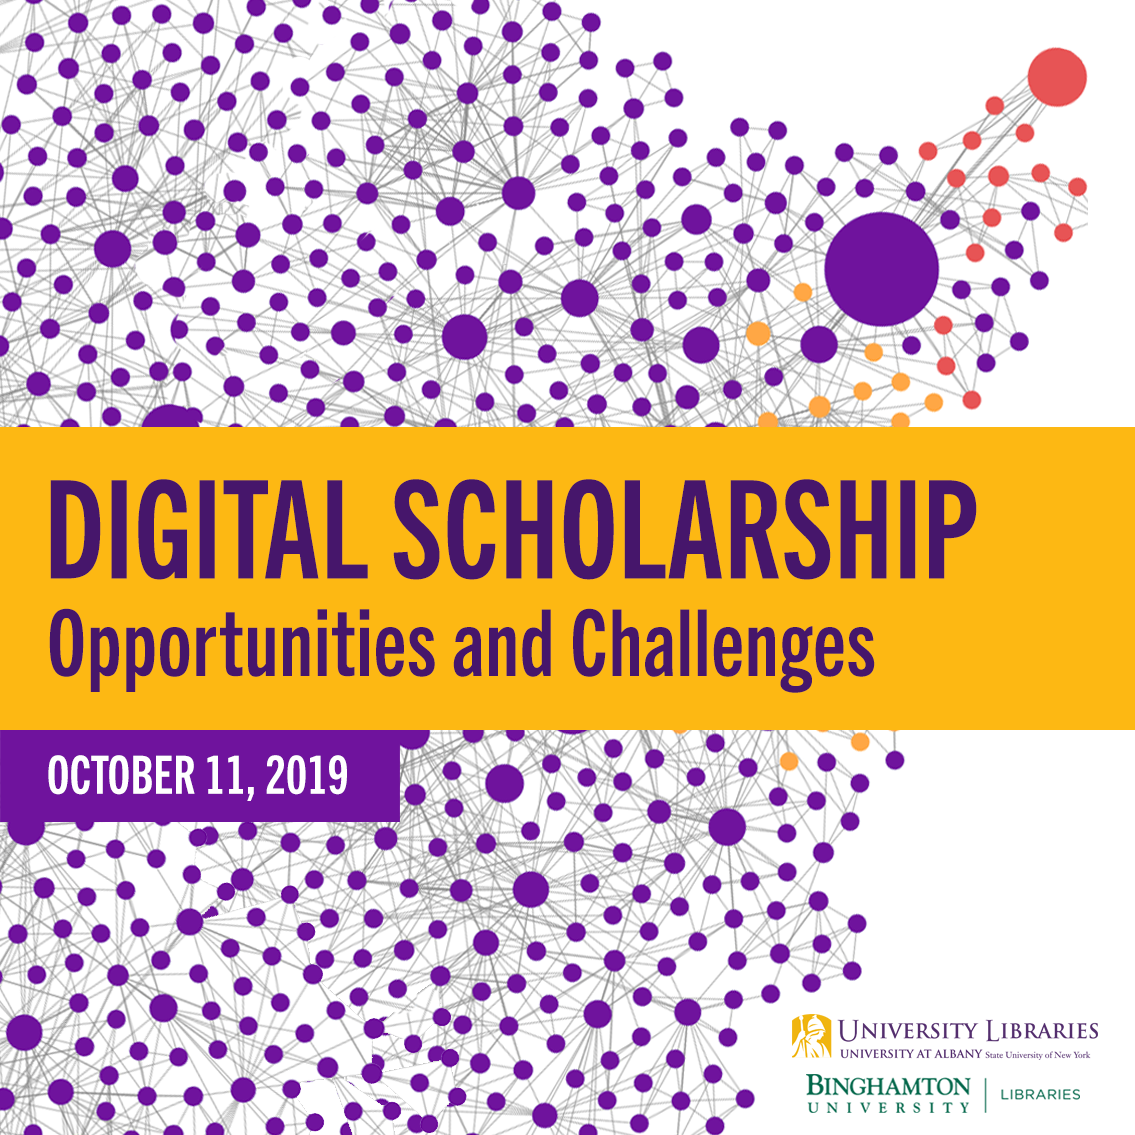 Digital Scholarship: Opportunities and Challenges